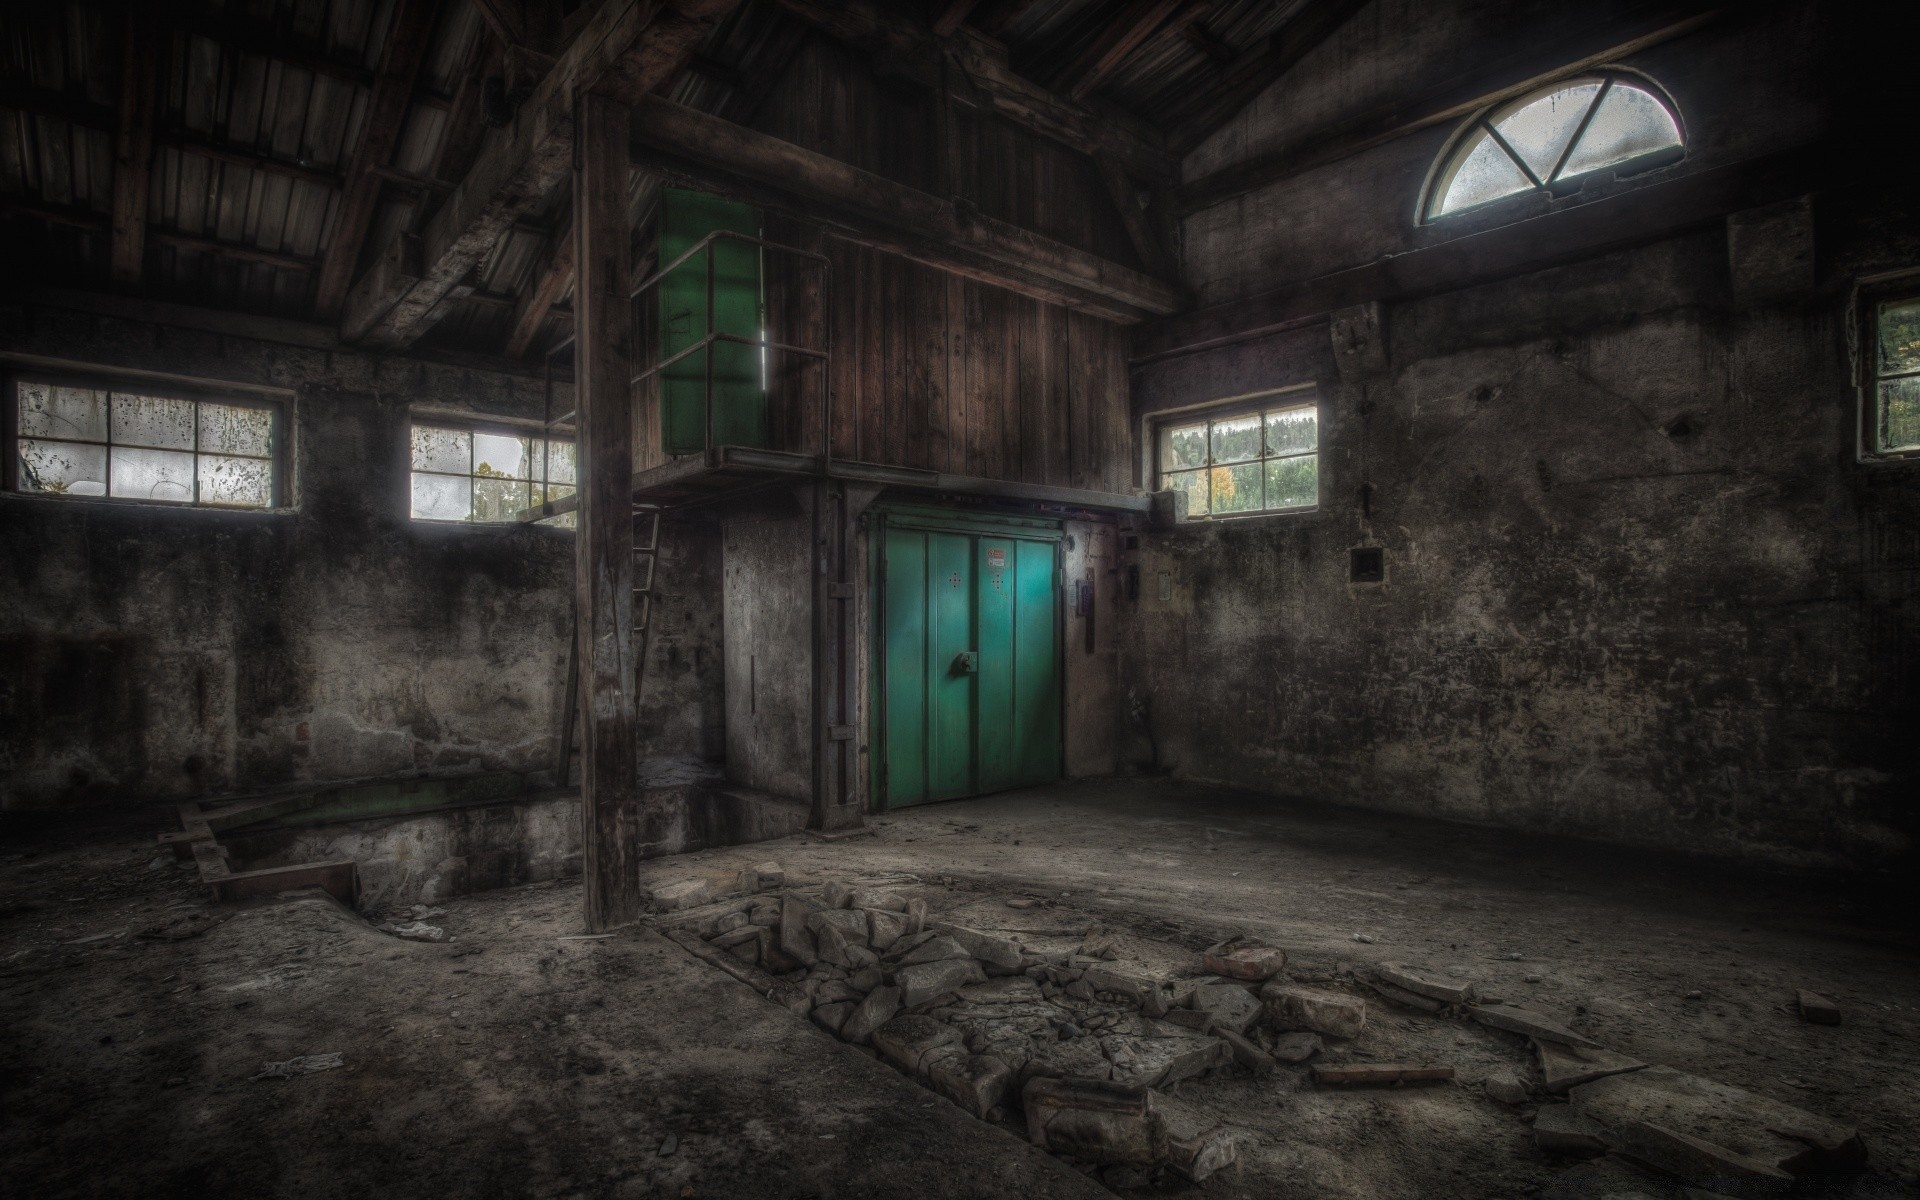 urban abandoned creepy decay eerie light building warehouse architecture dark graffiti offense indoors skittish derelict shadow broken jail ghost old